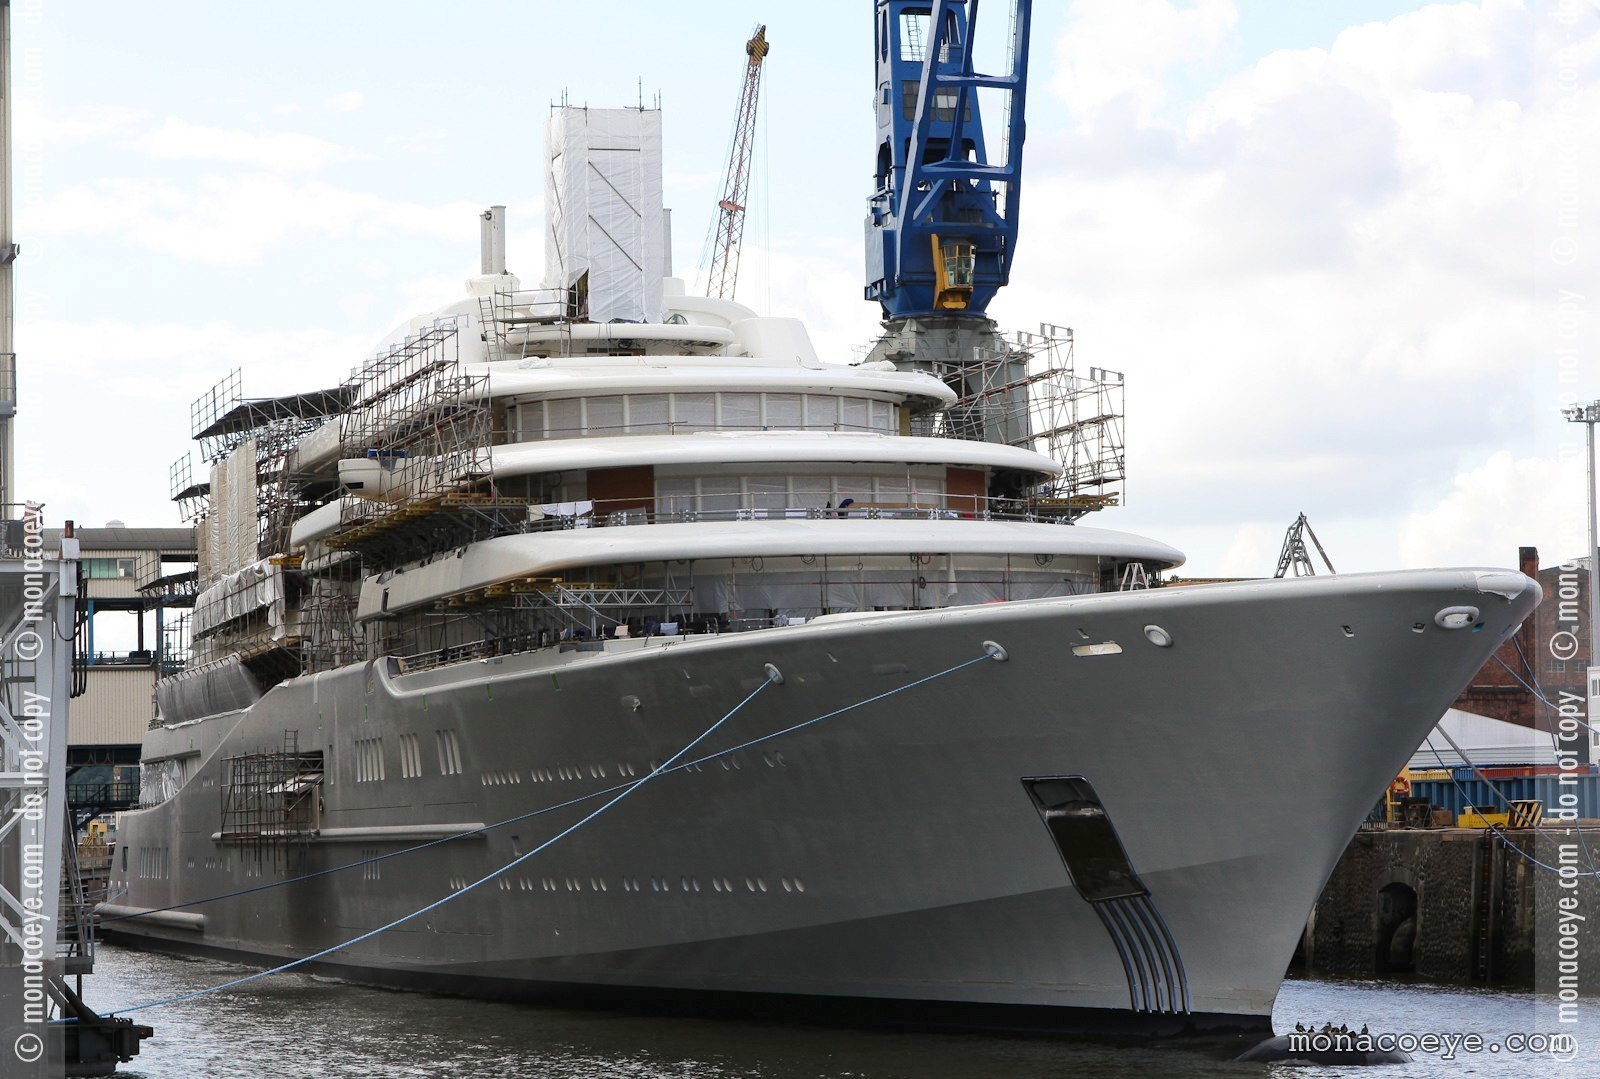 Eclipse - finishing touches put on Roman Abramovich new yacht, covered with scaffolding